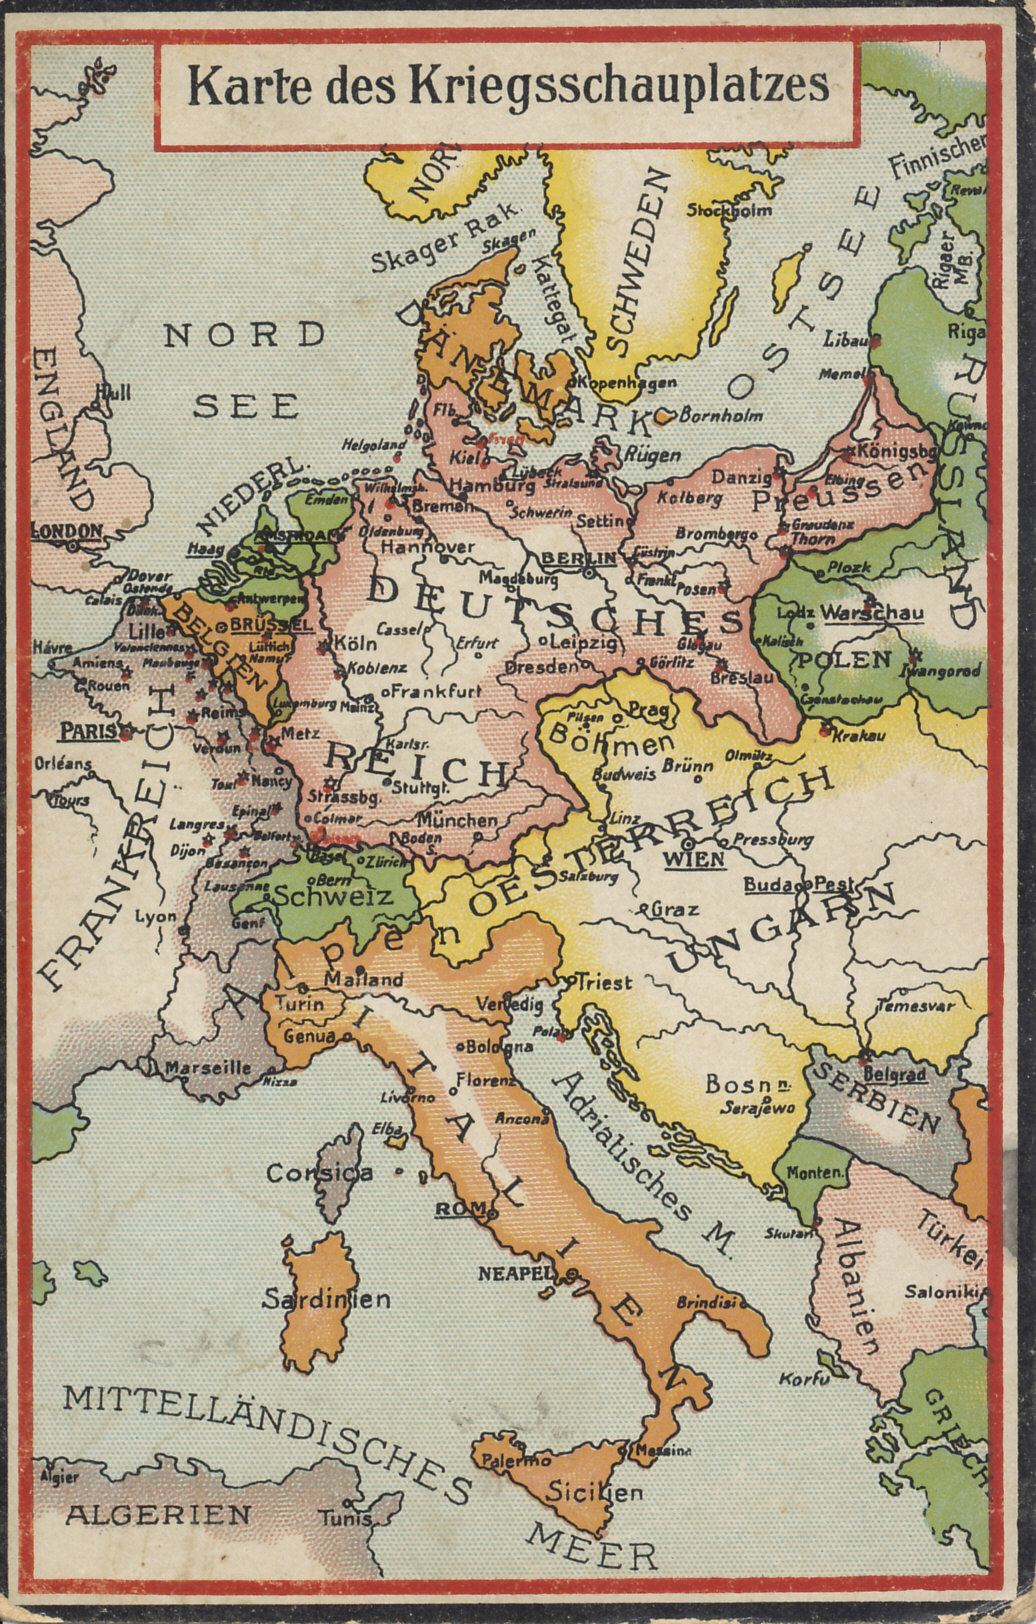 Map of the European theater of war. The map does not reflect the territorial gains of Serbia, Montenegro, and Greece at the expense of Turkey in the Balkans wars of 1912 and 1913.